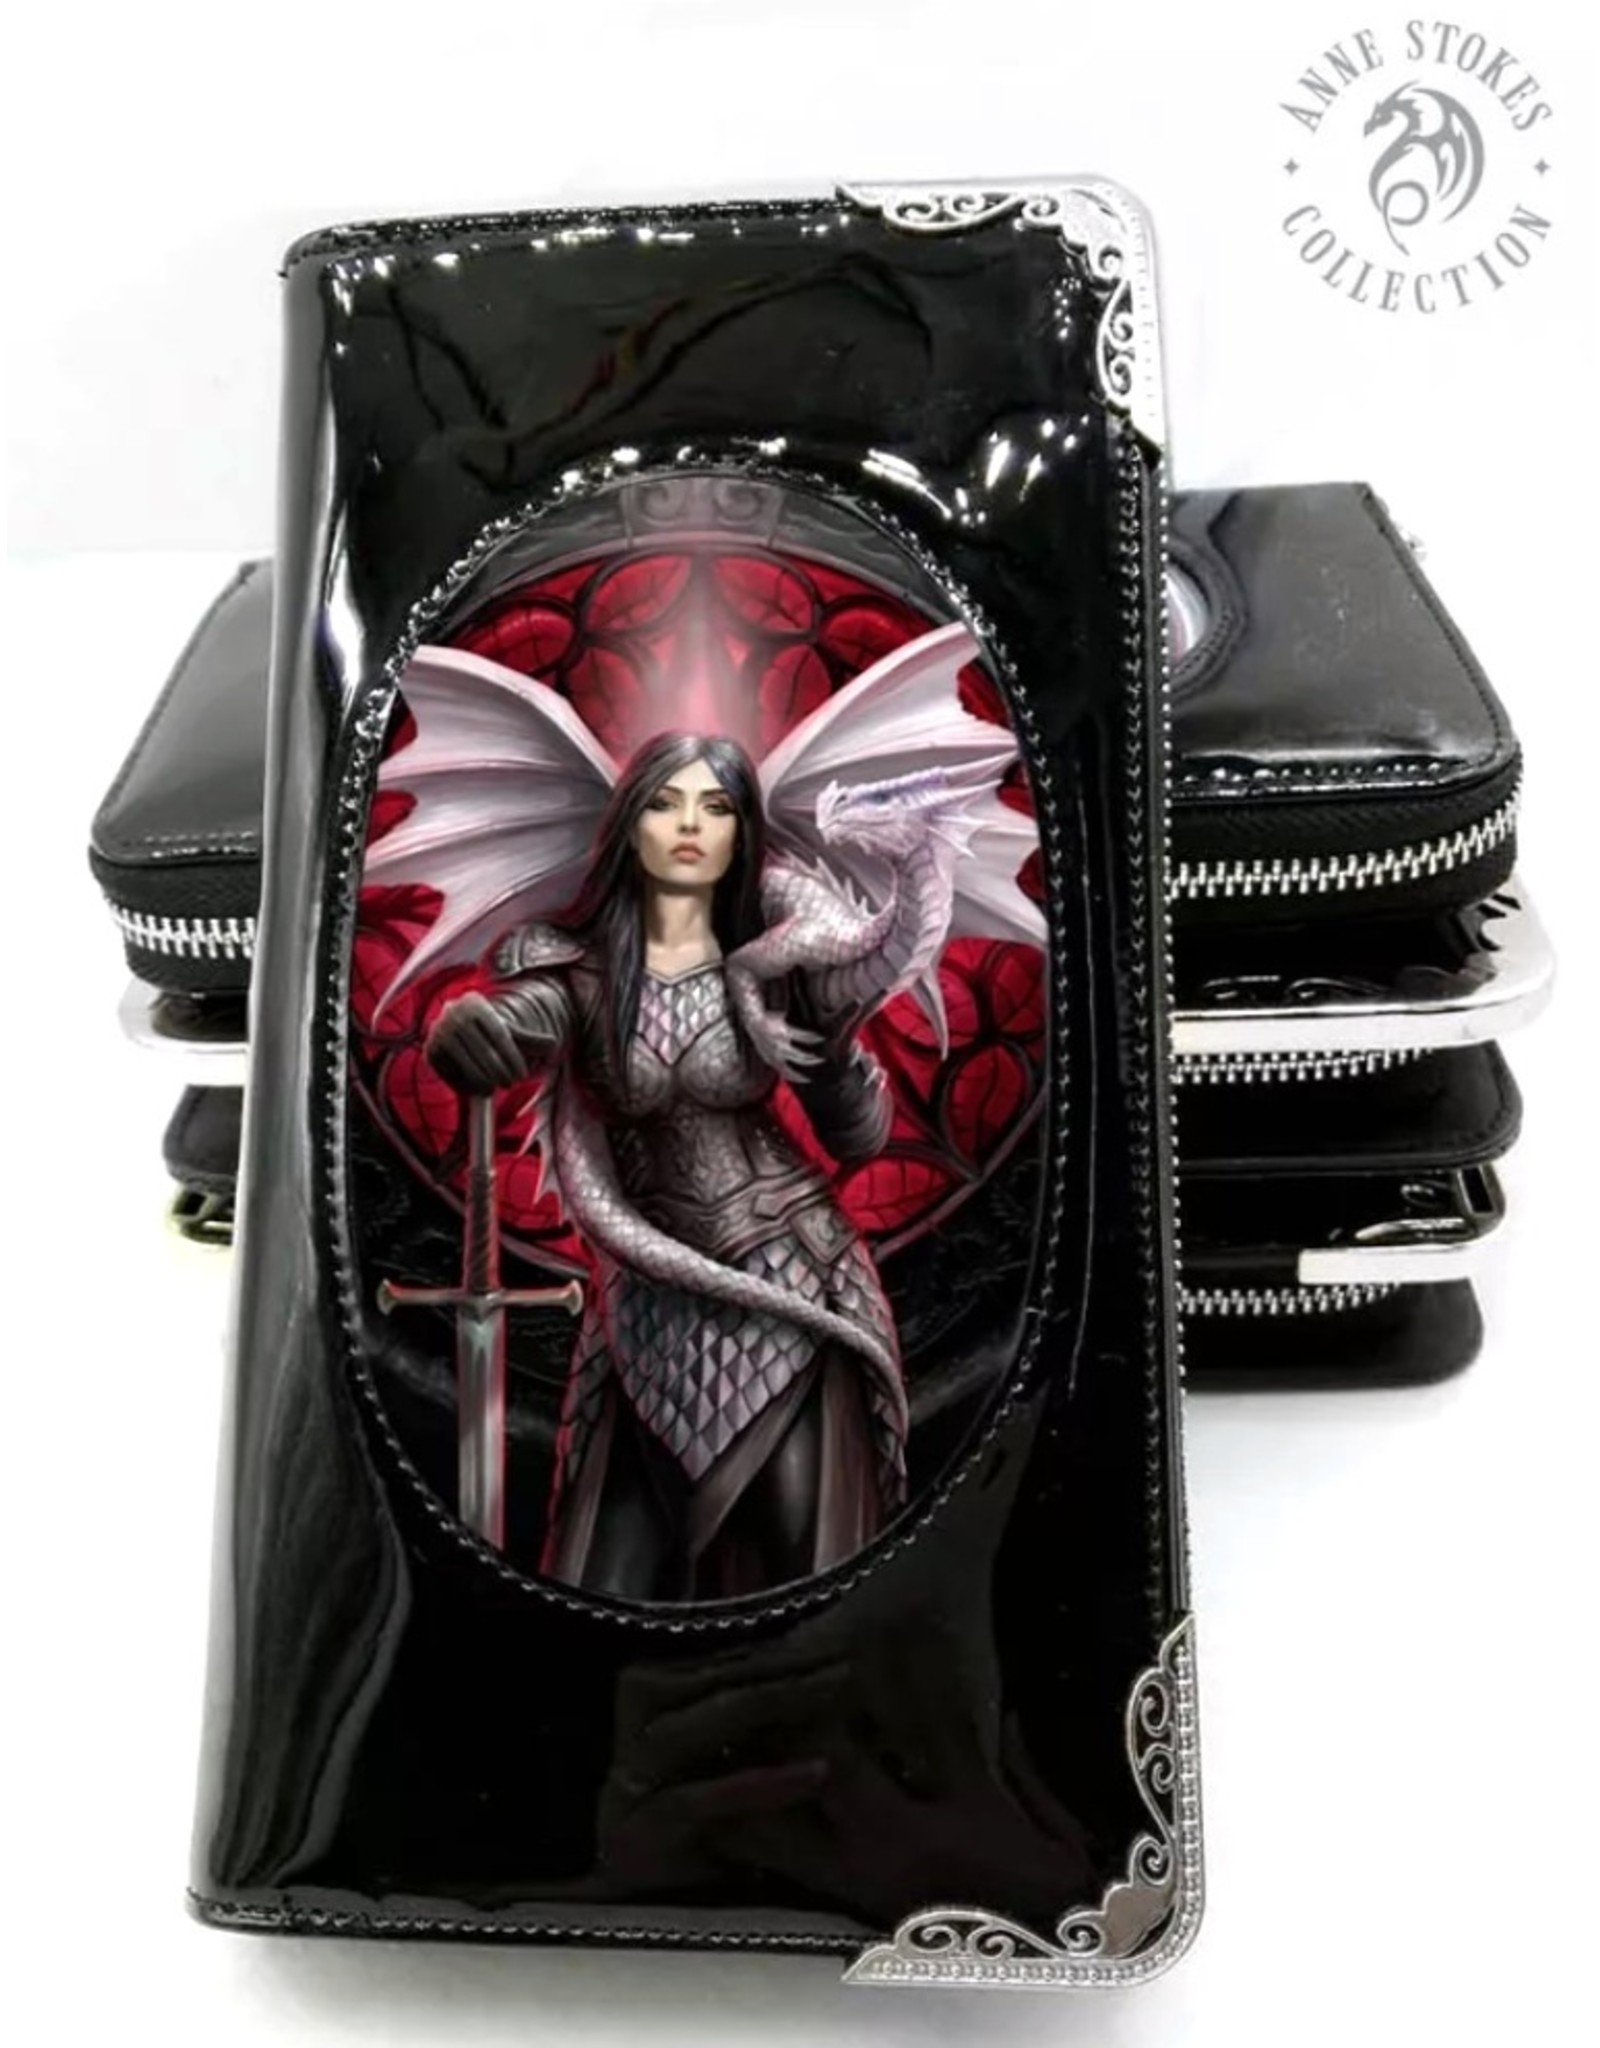 Anne Stokes Gothic wallets and purses - Anne Stokes 3D lenticular purse Valour